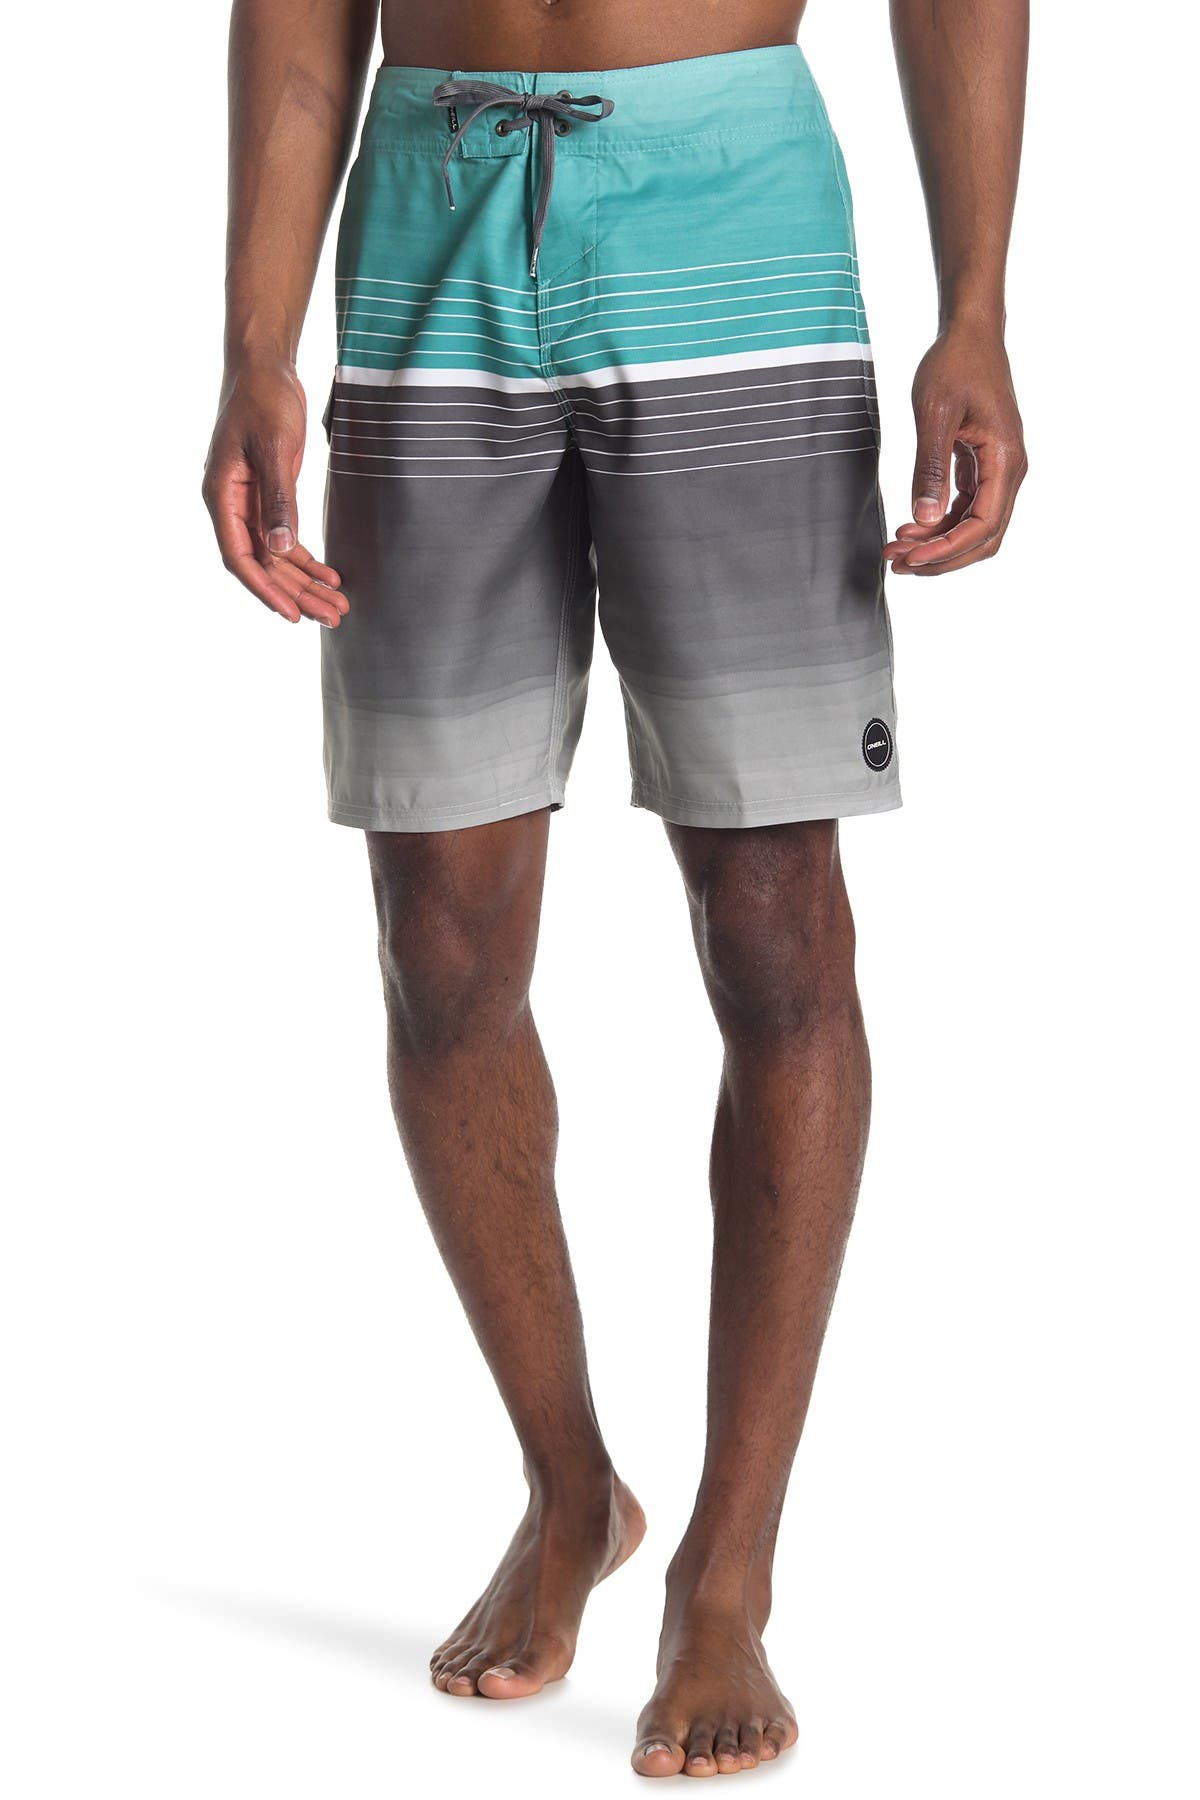 Image of O'Neill High Tide Stripe Boardshorts